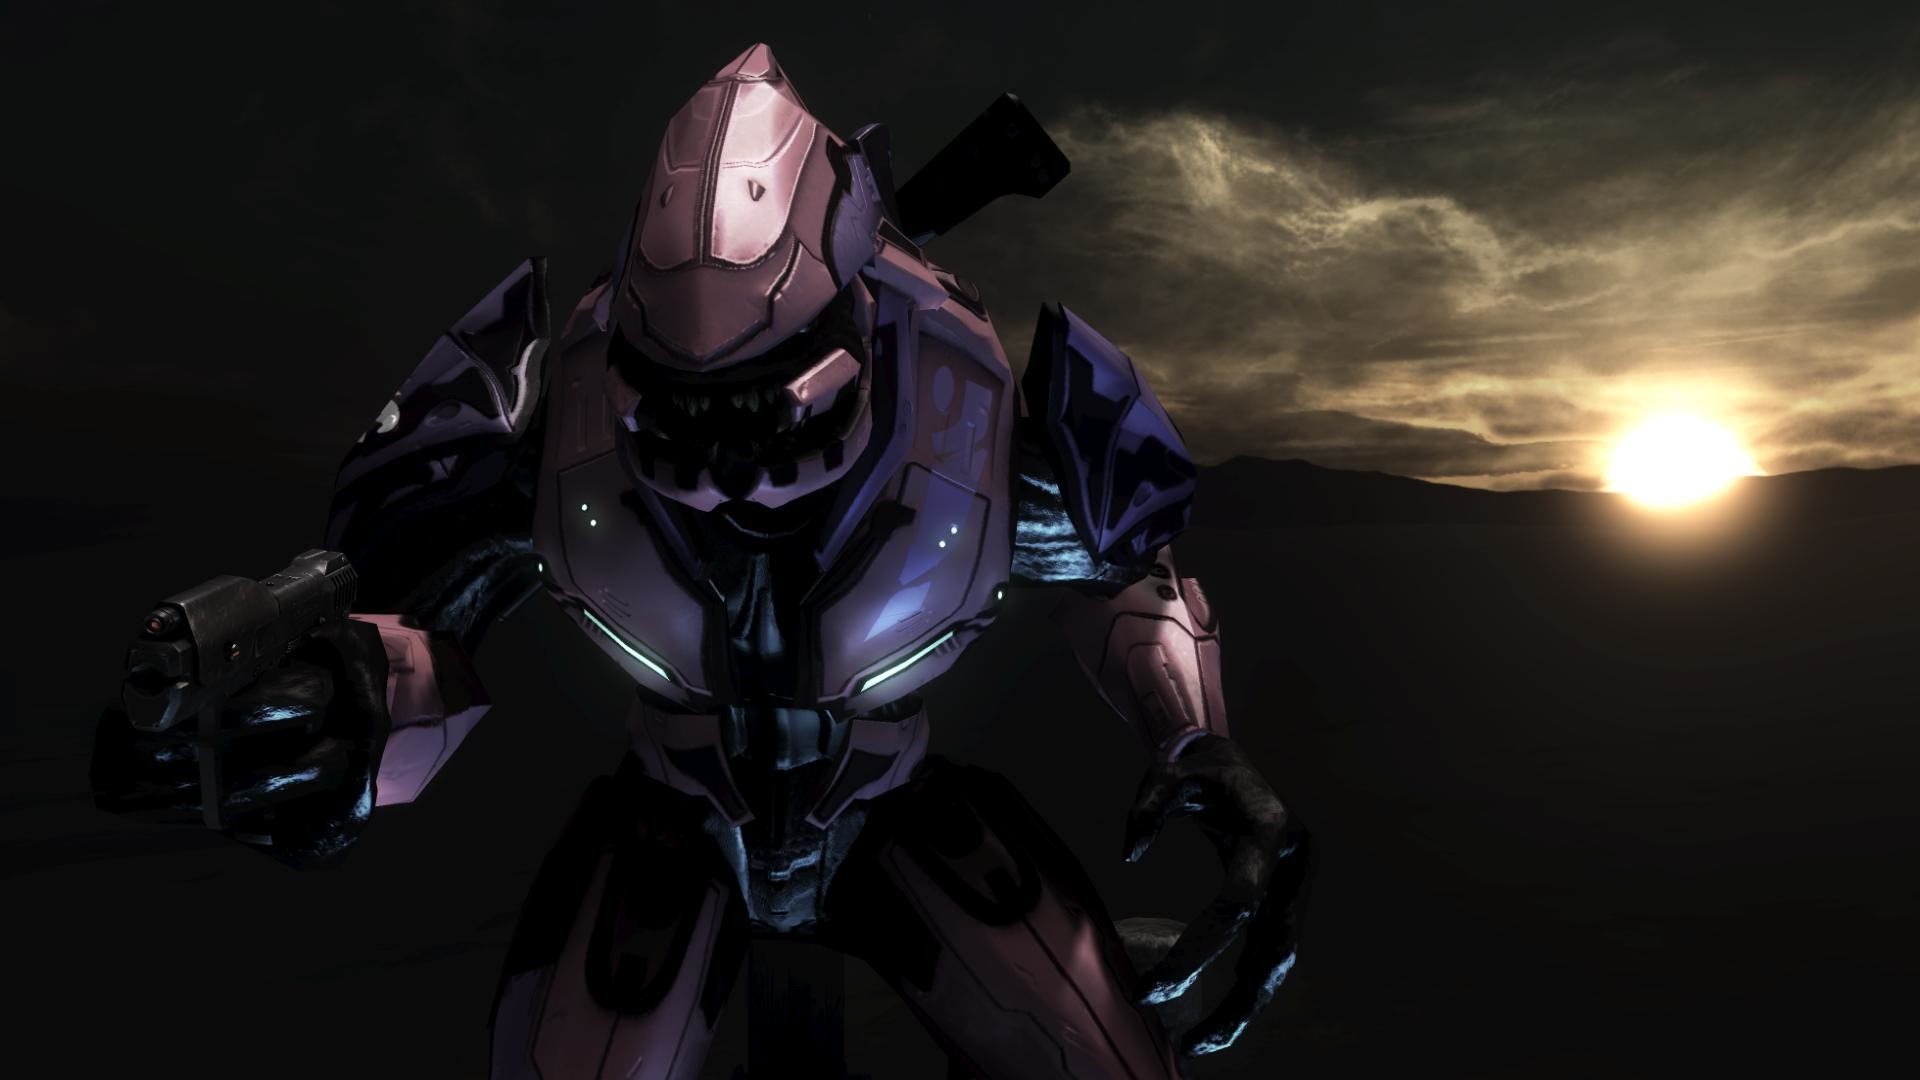 halo 3 arbiter wallpaper (86+ images)